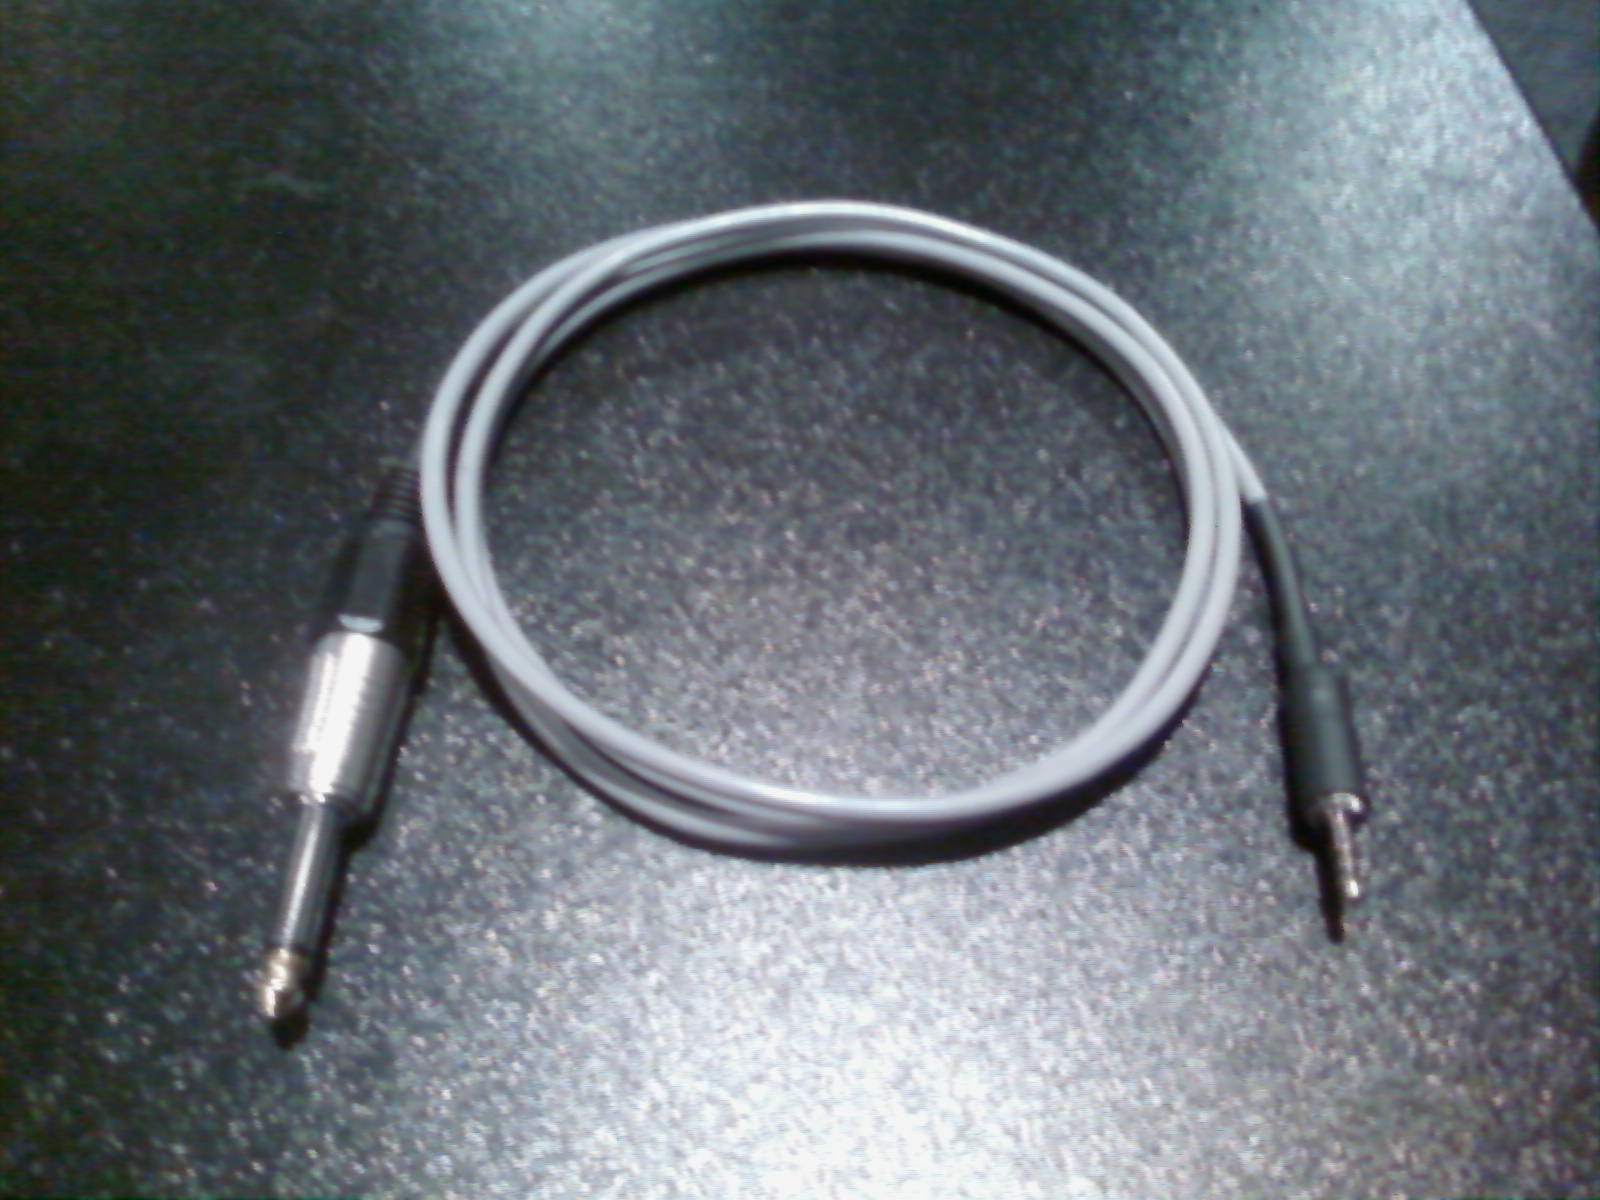 The Stereo To Mono Summing Cable That No One Makes Late Wiring Diagram Xlr 1 4 Jack Its Constructed Of 6 Six Feet Low Profile Balanced Shielded Microphone On End Is A 8 35mm Trs Plug For Connecting